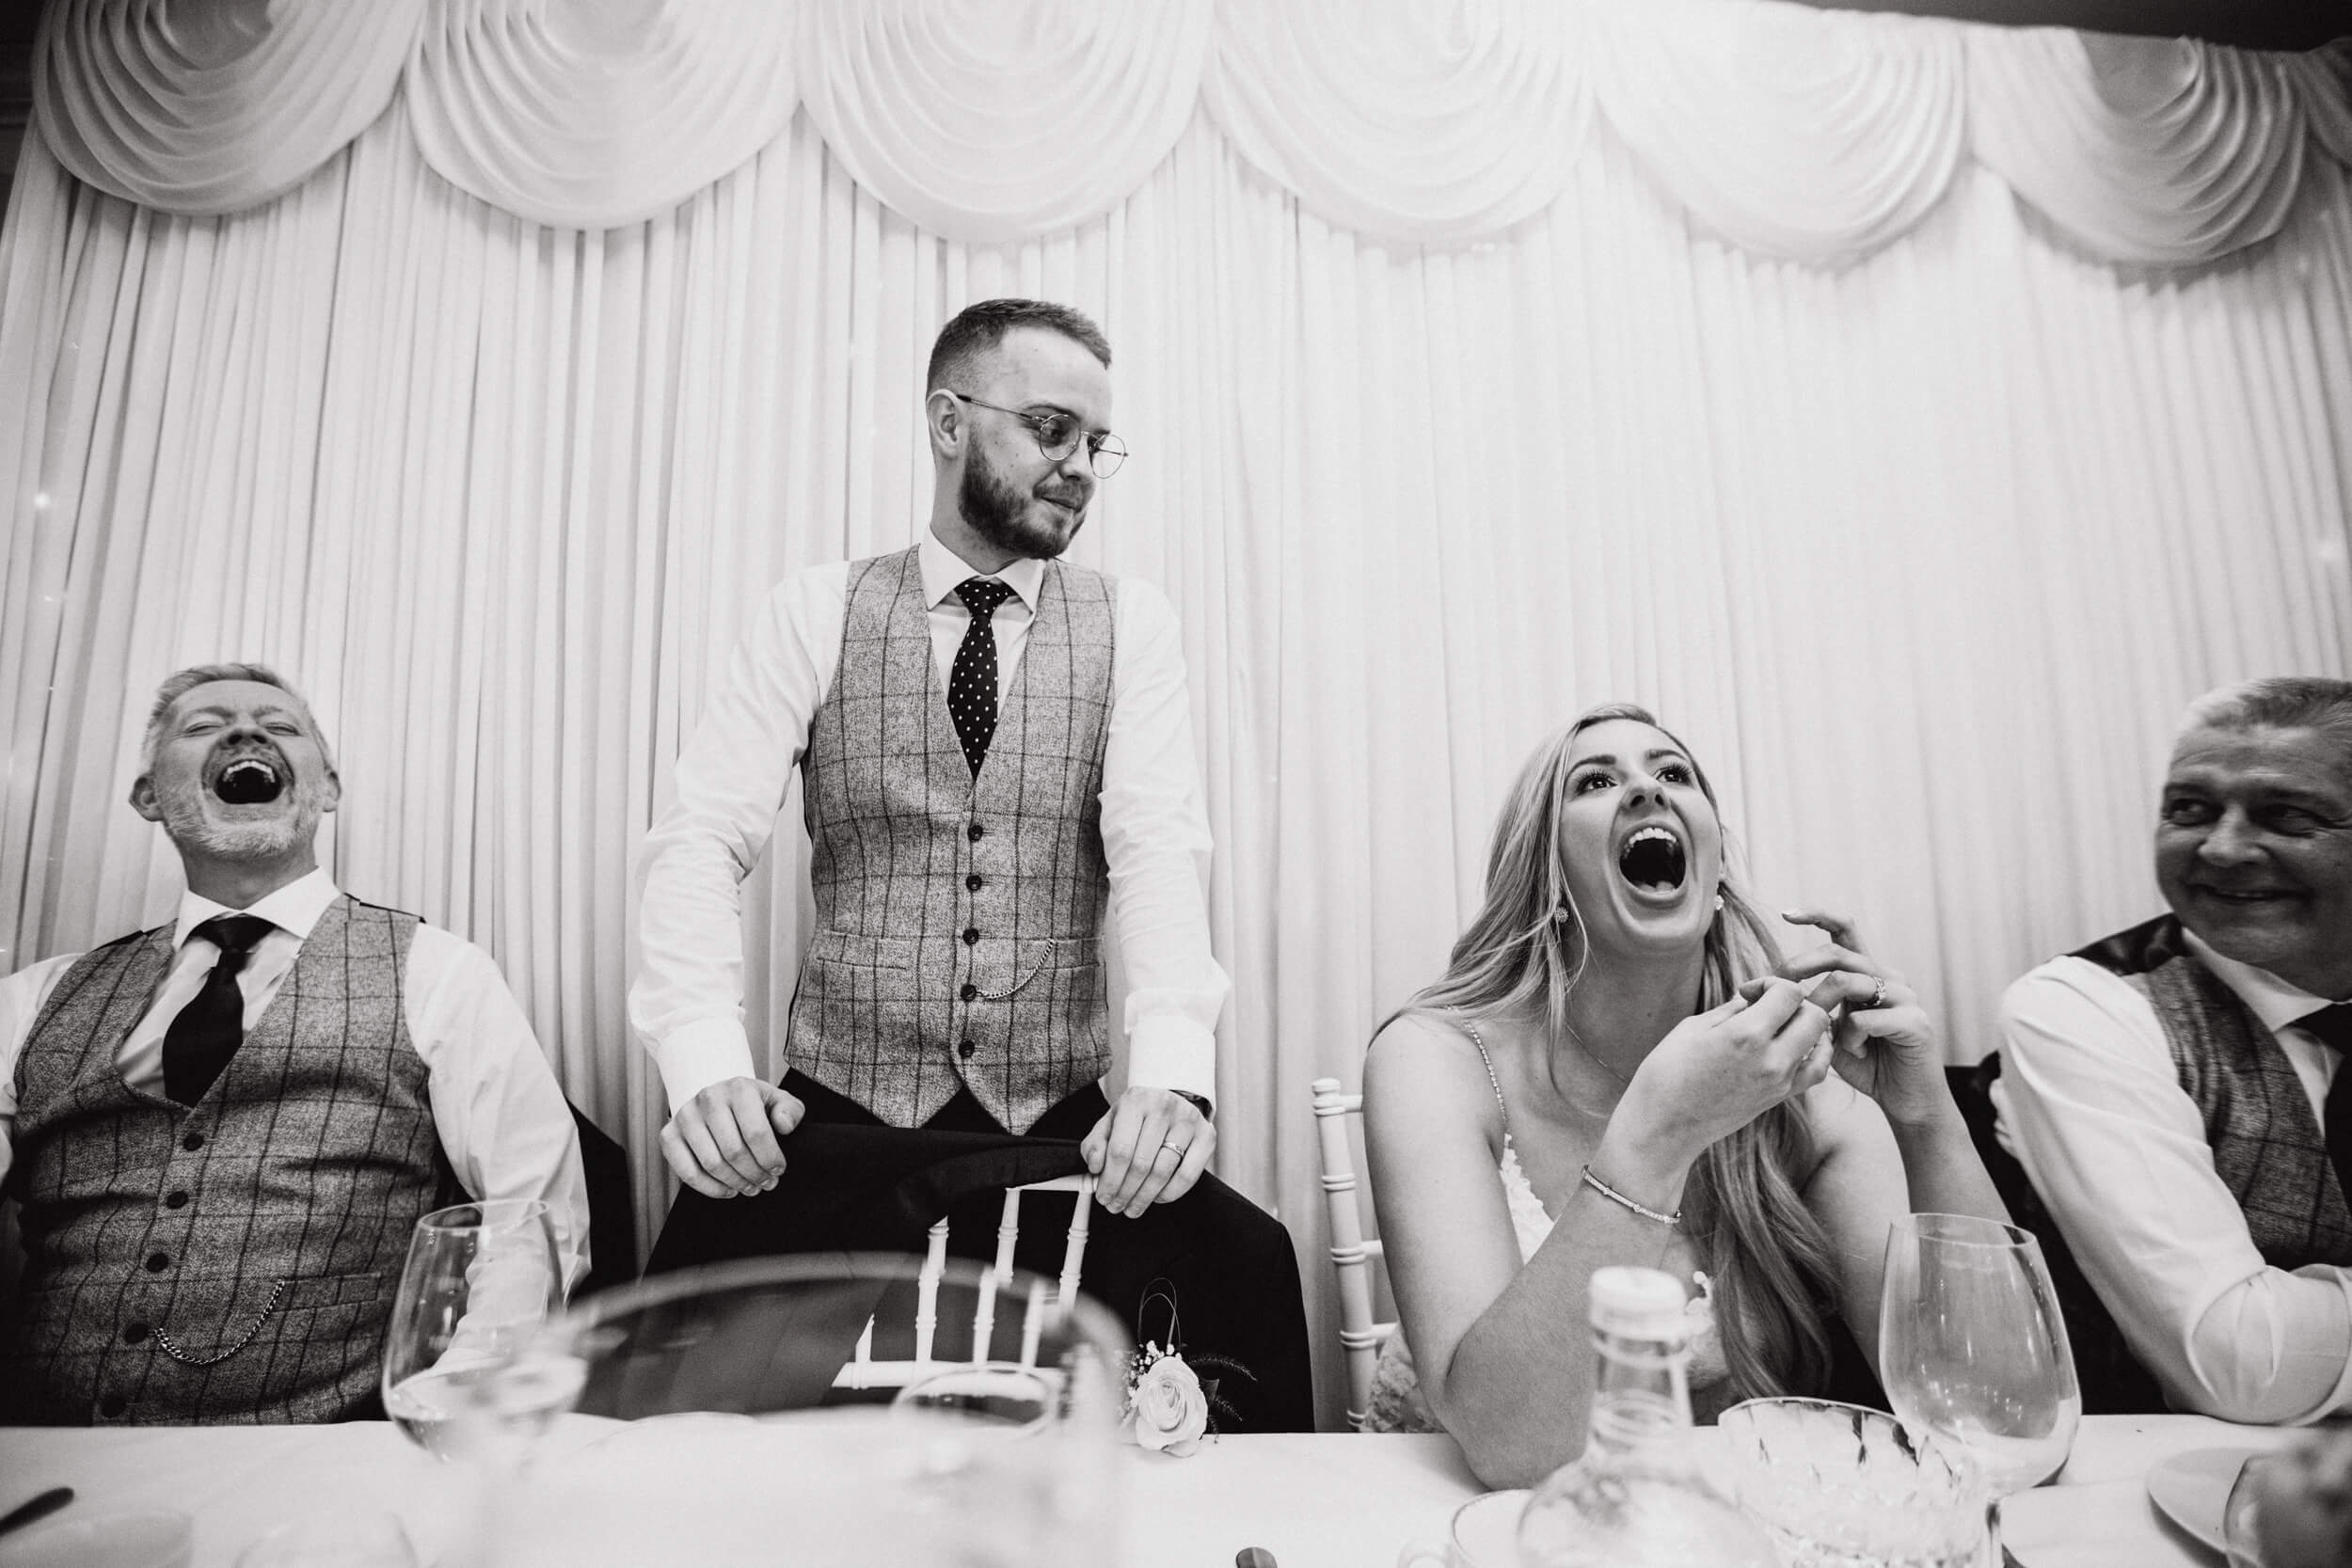 black and white close up photograph of groom delivering speech to wedding party